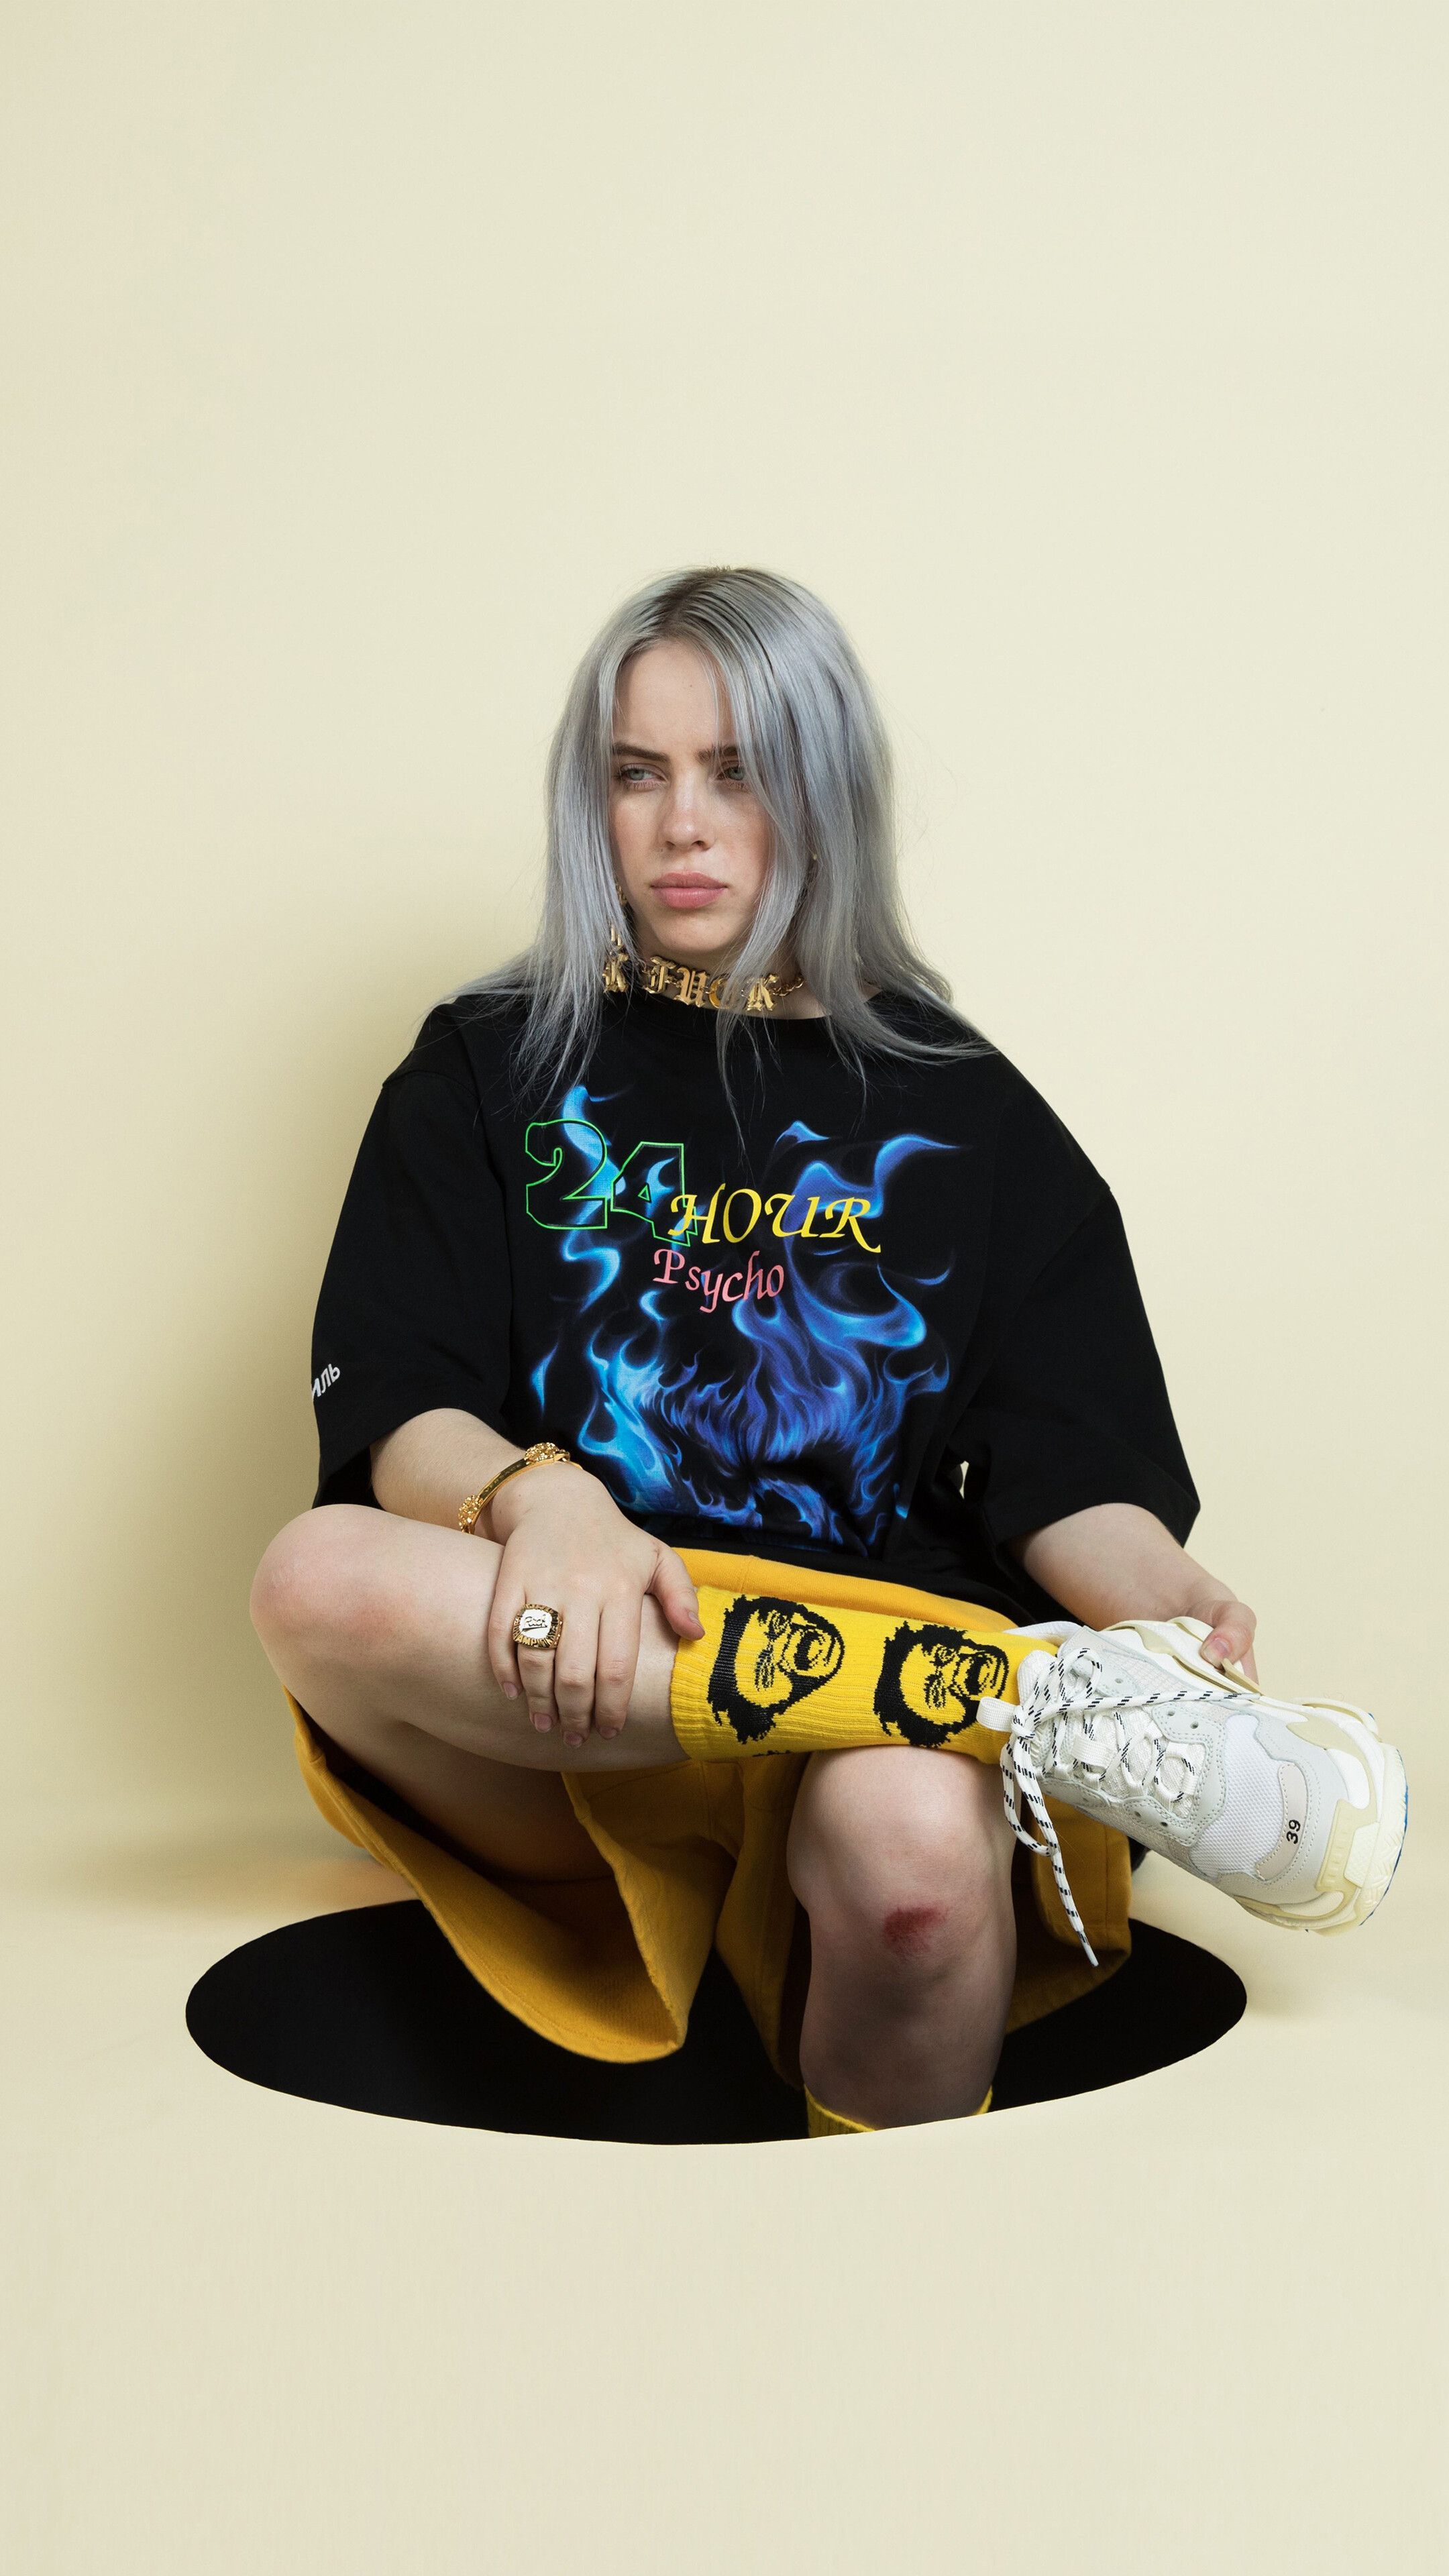 billie eilish hd iphone wallpapers wallpaper cave